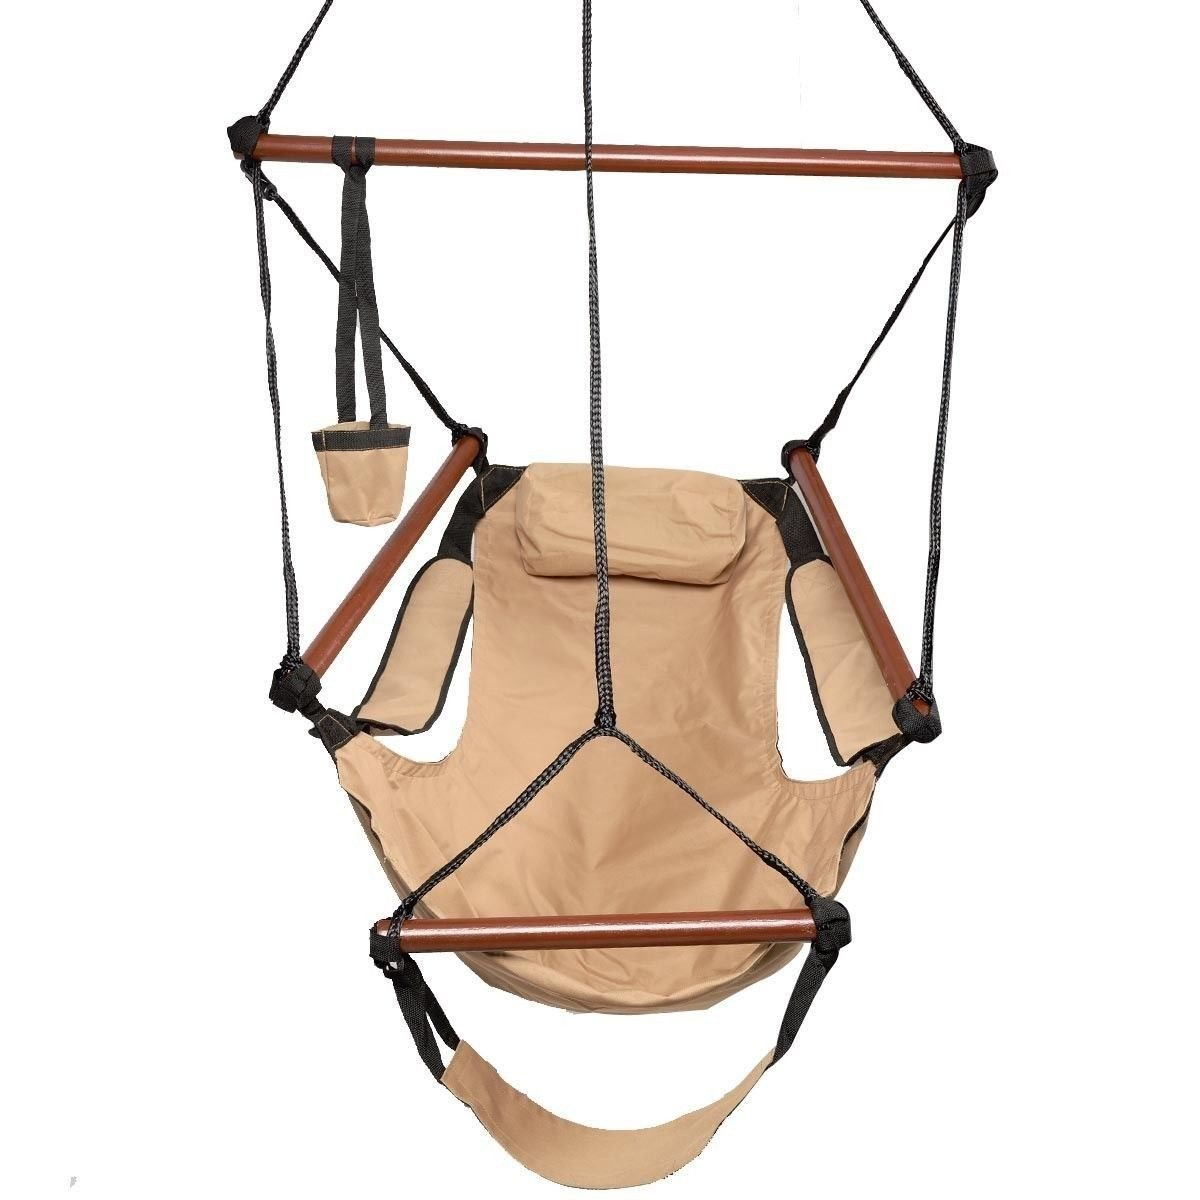 Xnonix Hammock Hanging Chair Air Deluxe Outdoor Chair Solid Wood 250lb